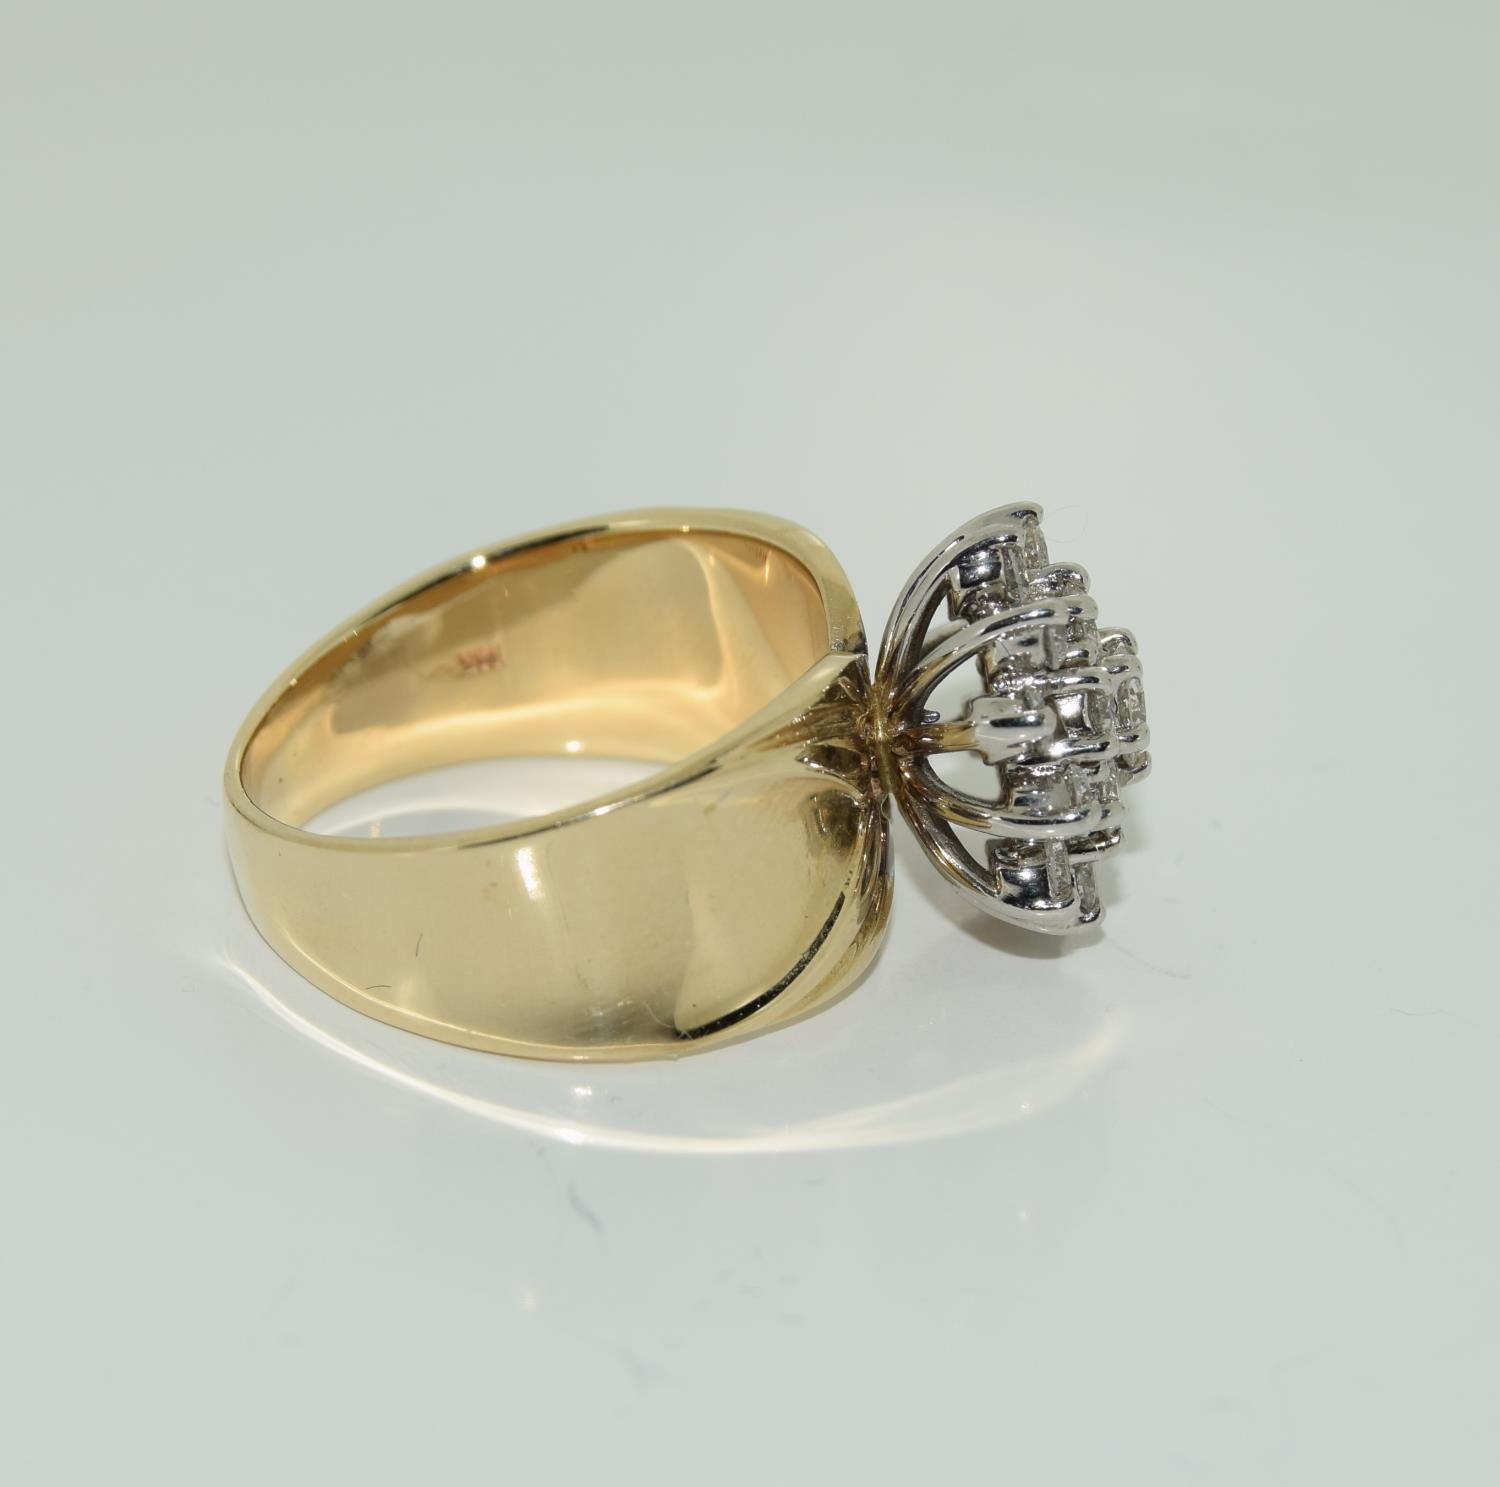 A 14ct yellow gold substantial diamond cluster ring of over 1ct size O - Image 2 of 3